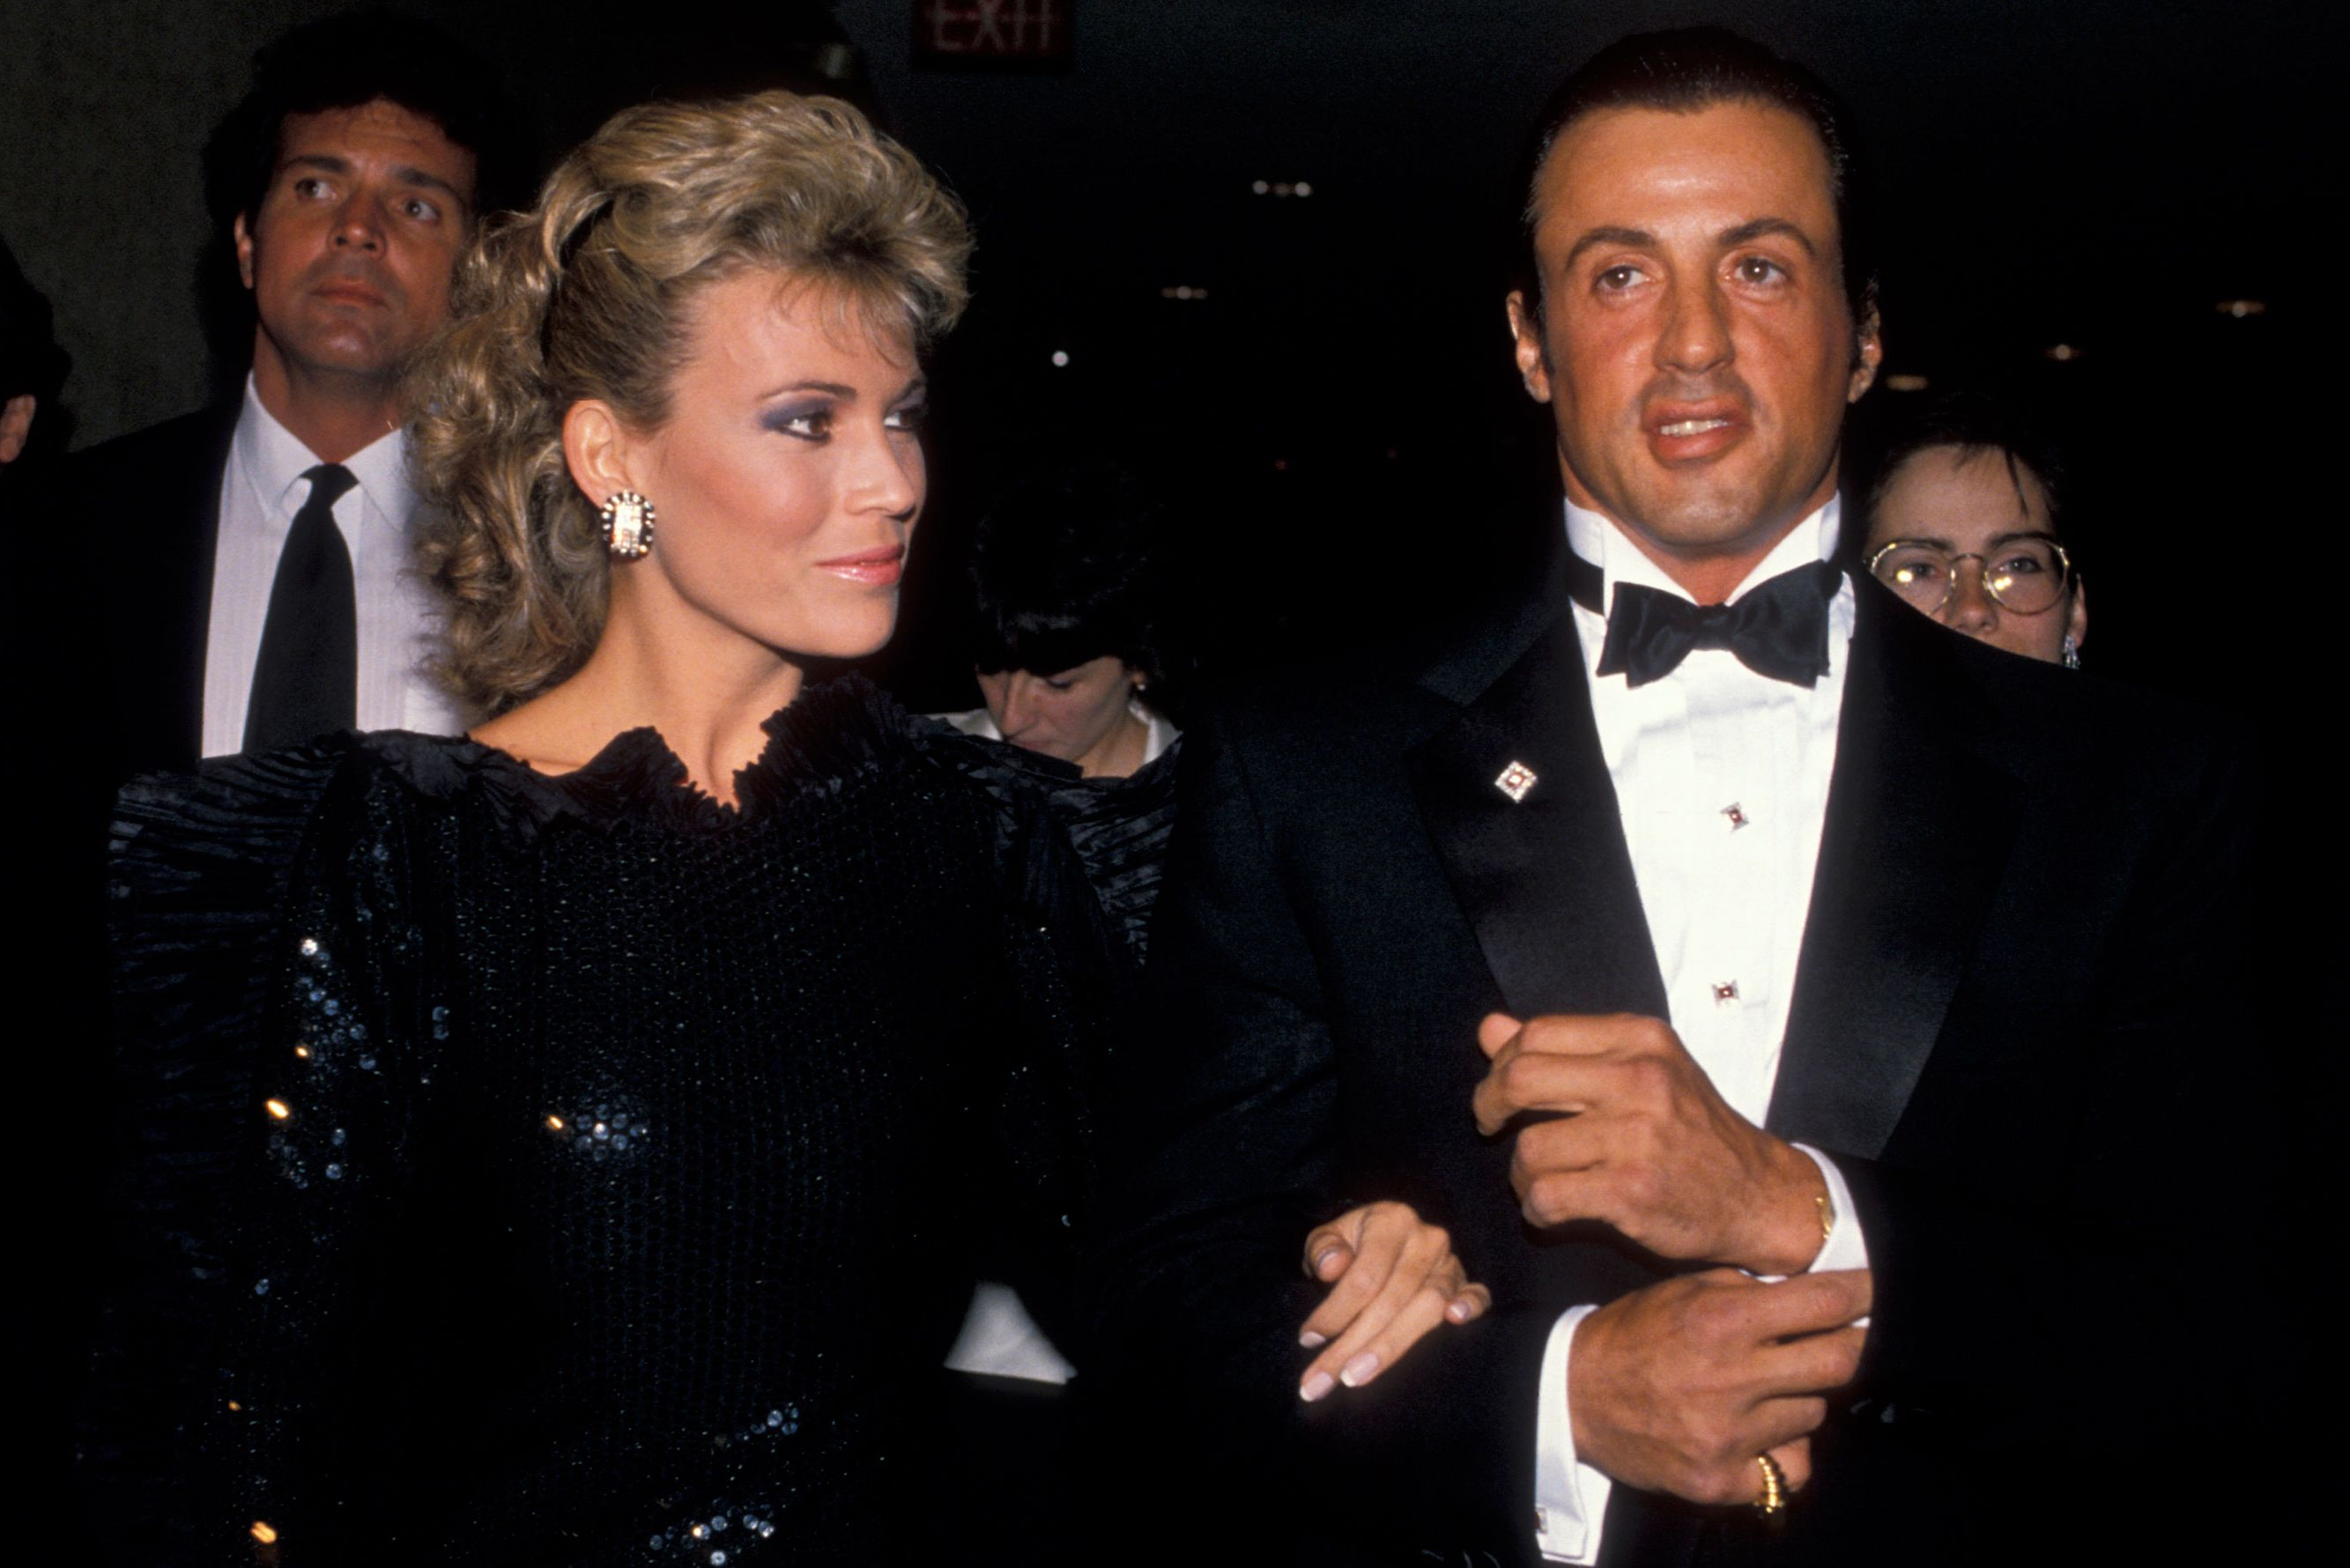 Vanna White and  Sylvester Stallone at the WHCD in 1988. ​​